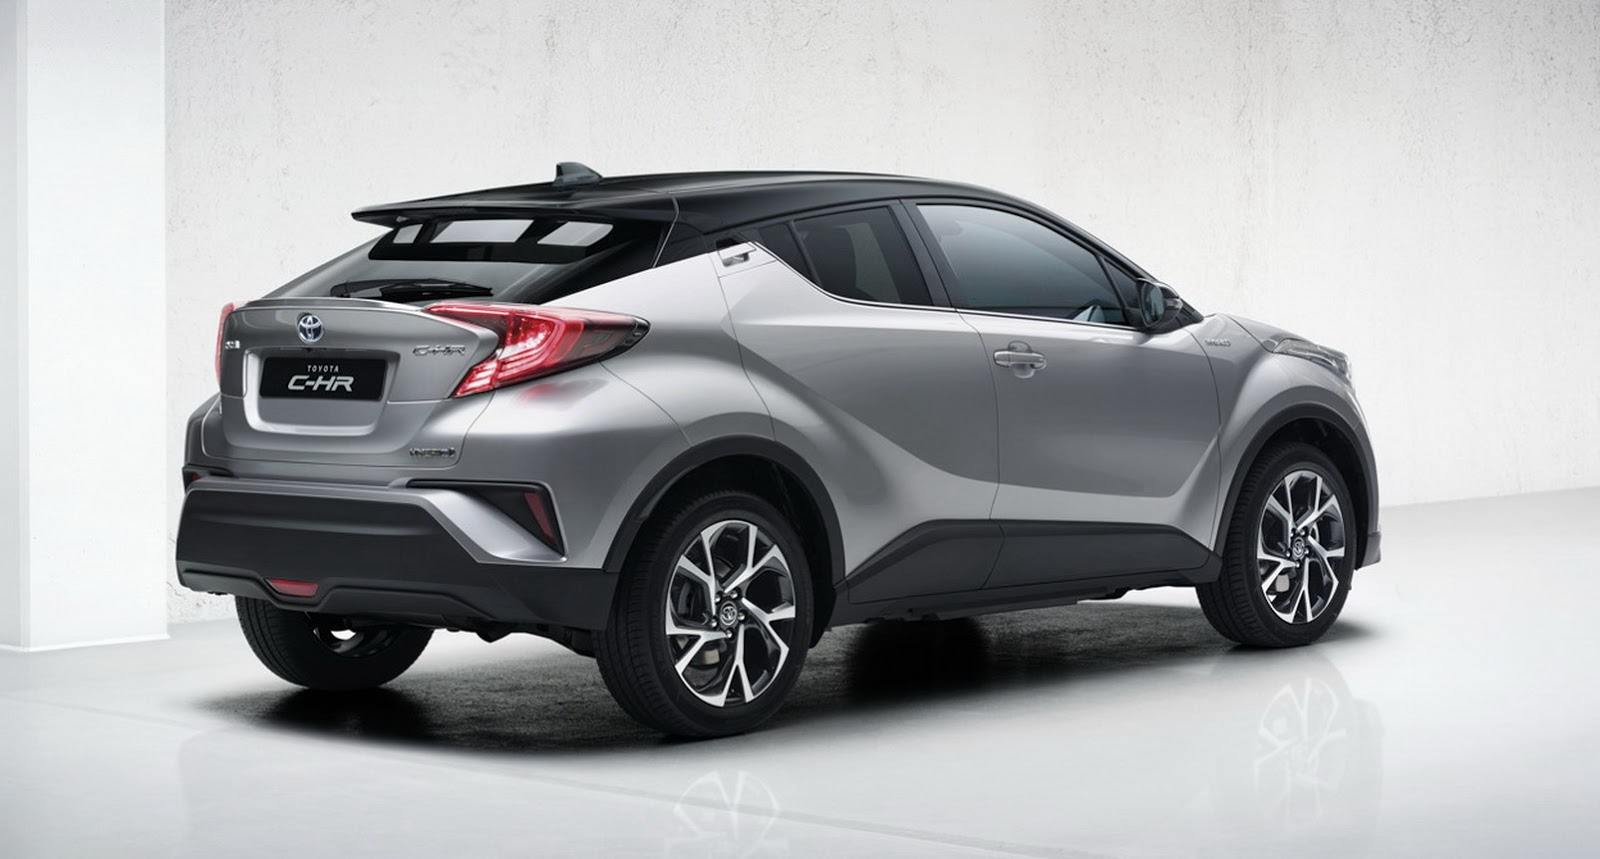 Toyota Verso Nieuw Model >> New Toyota C-HR Gets 1.2L Turbo, 2.0L And 1.8L Hybrid Powertrains [New Pics] | carscoops.com